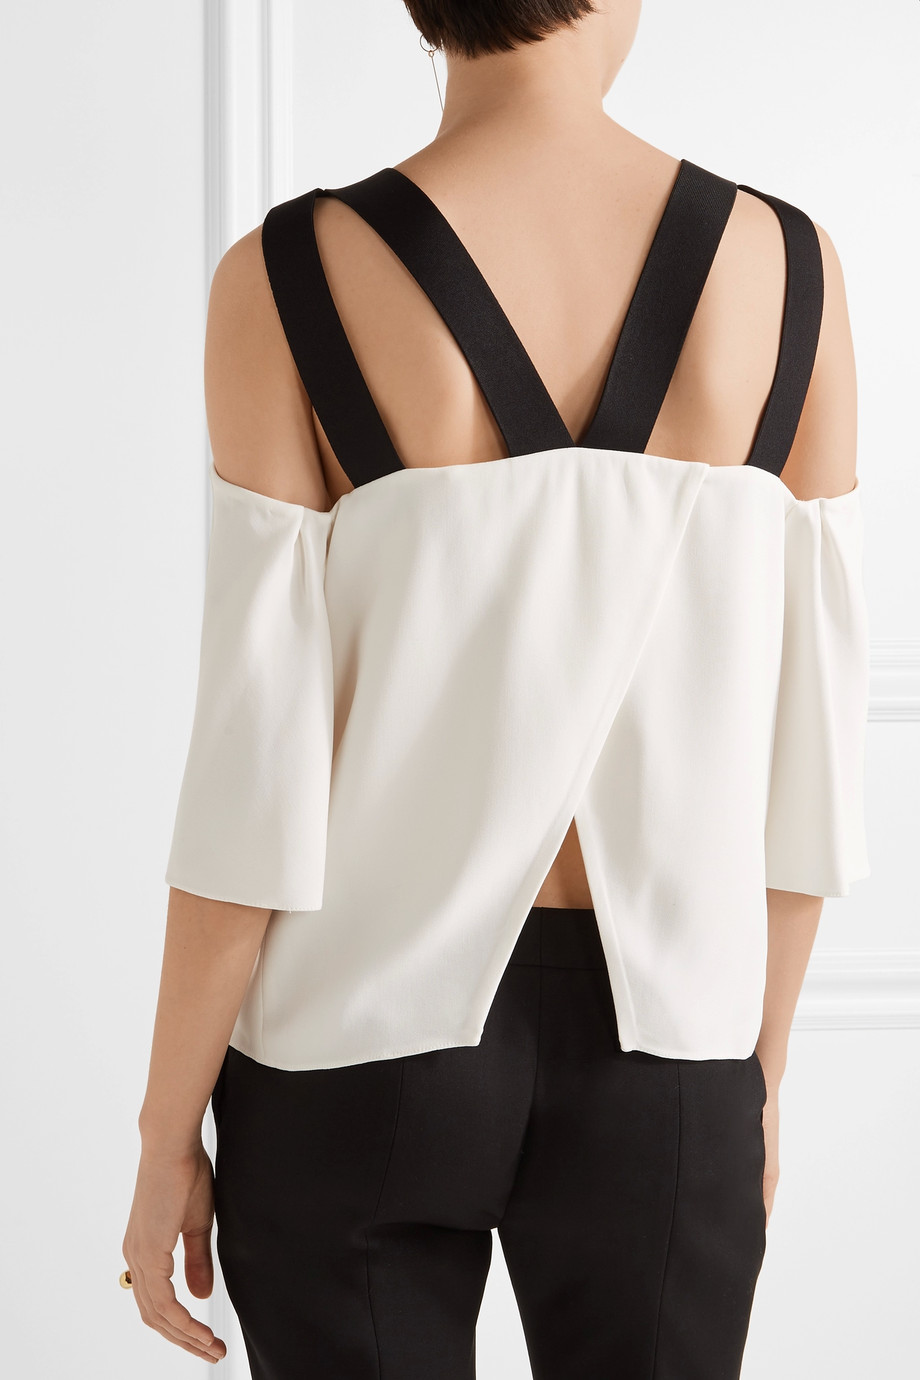 Stretch  Roland Mouret buy Stretch  Roland Mouret internet shop